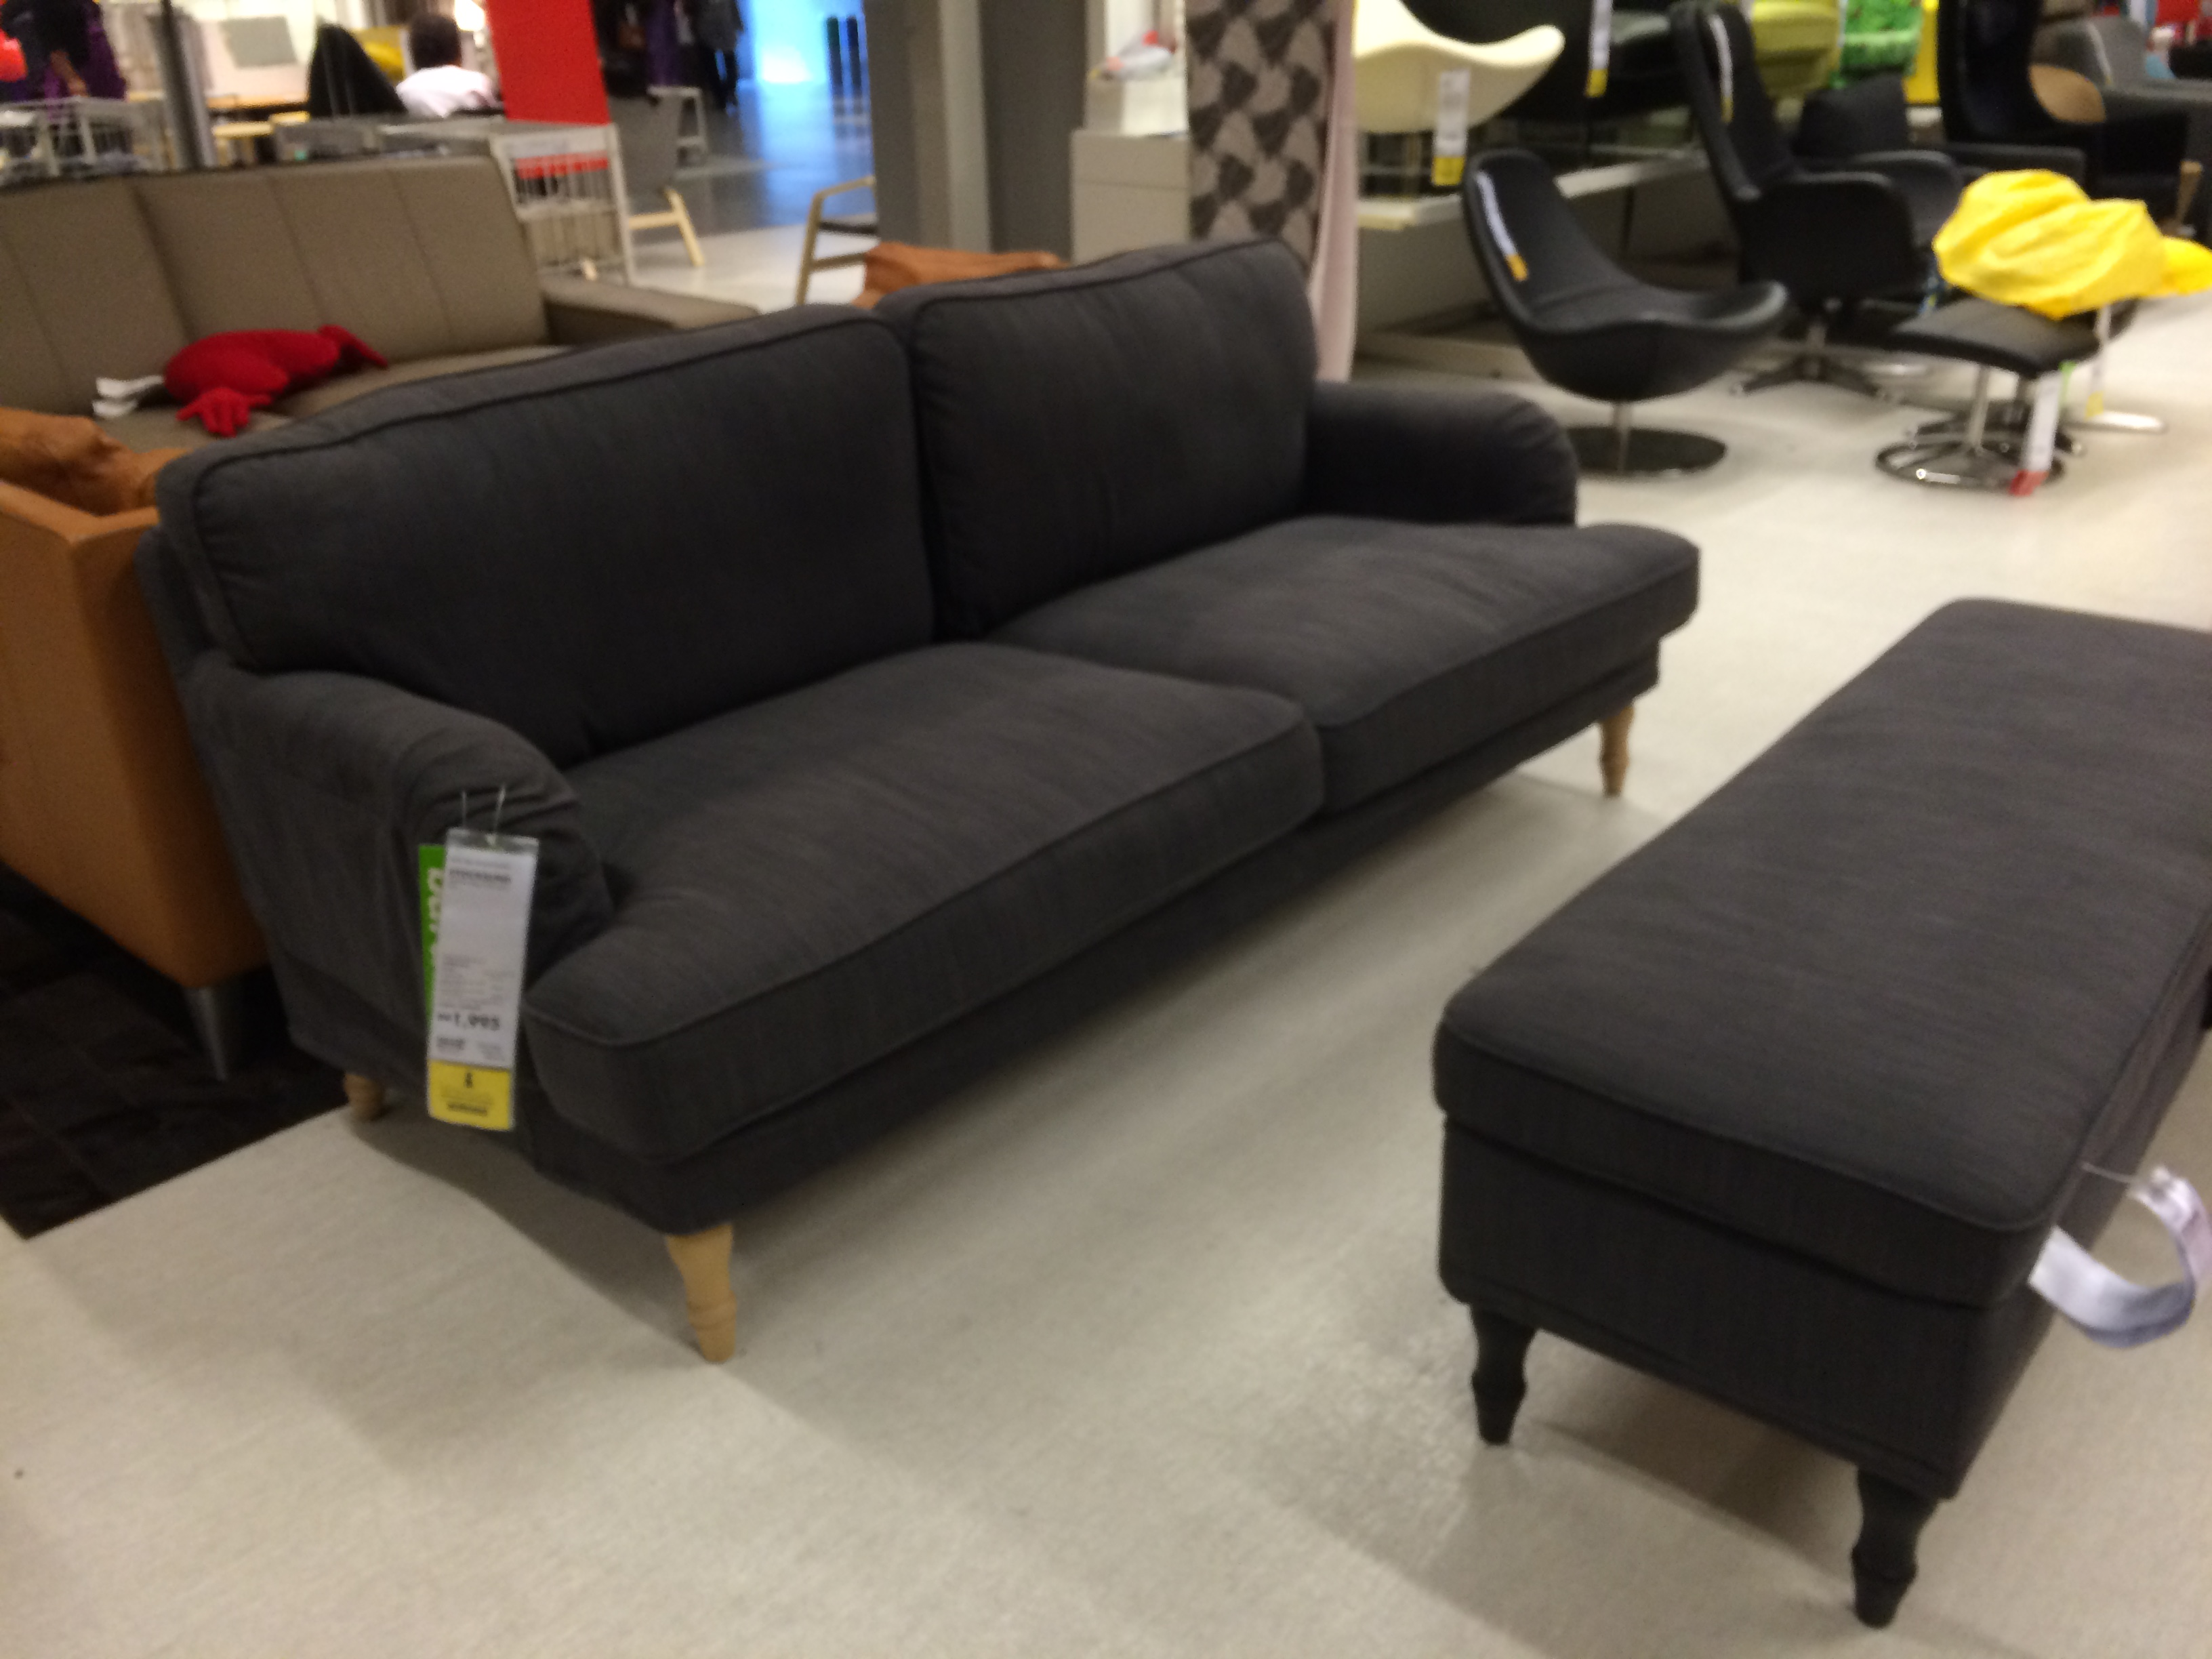 Ikea Matras Review Ikea Stocksund Sofa Series 2014 Review New At Ikea